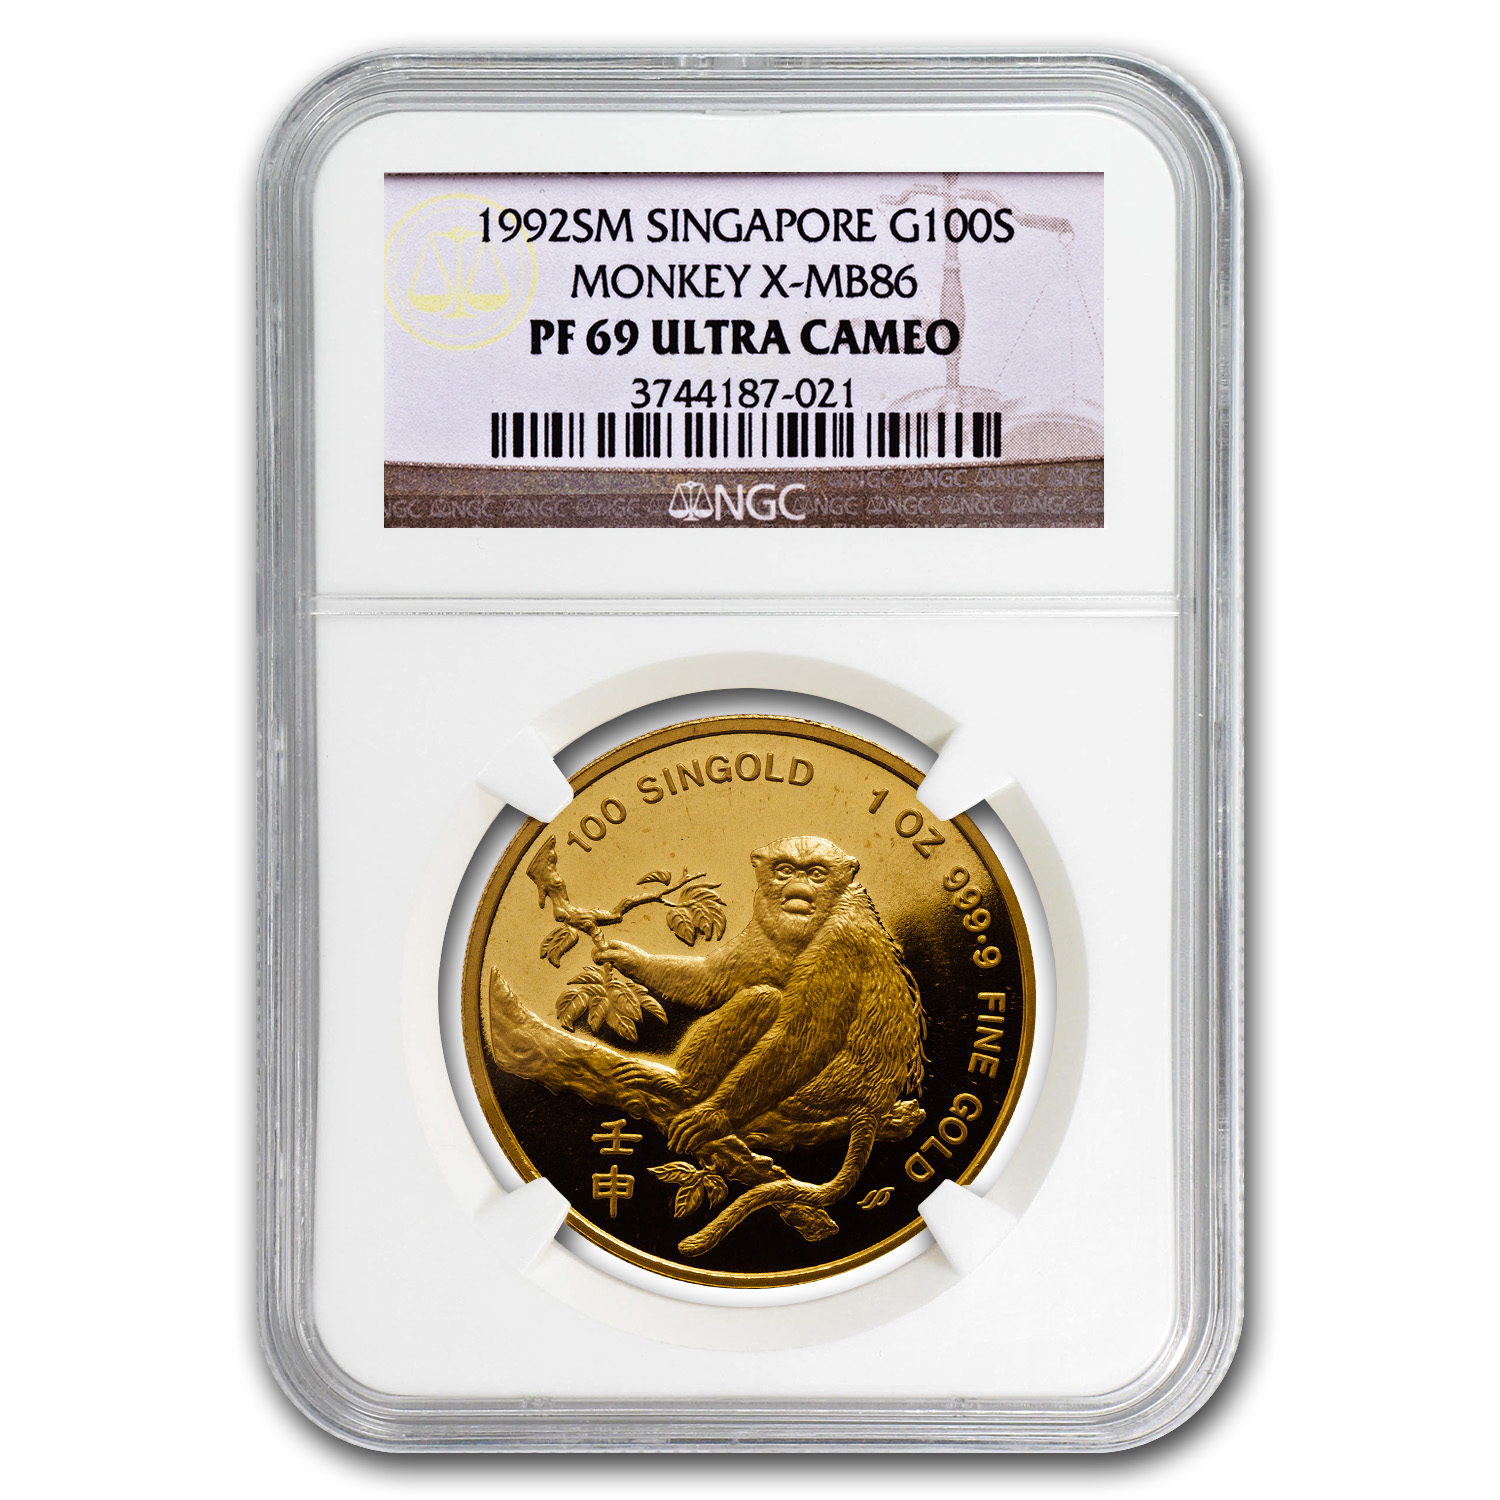 1992 Singapore 1 oz Proof Gold 100 Singold Monkey PR-69 NGC